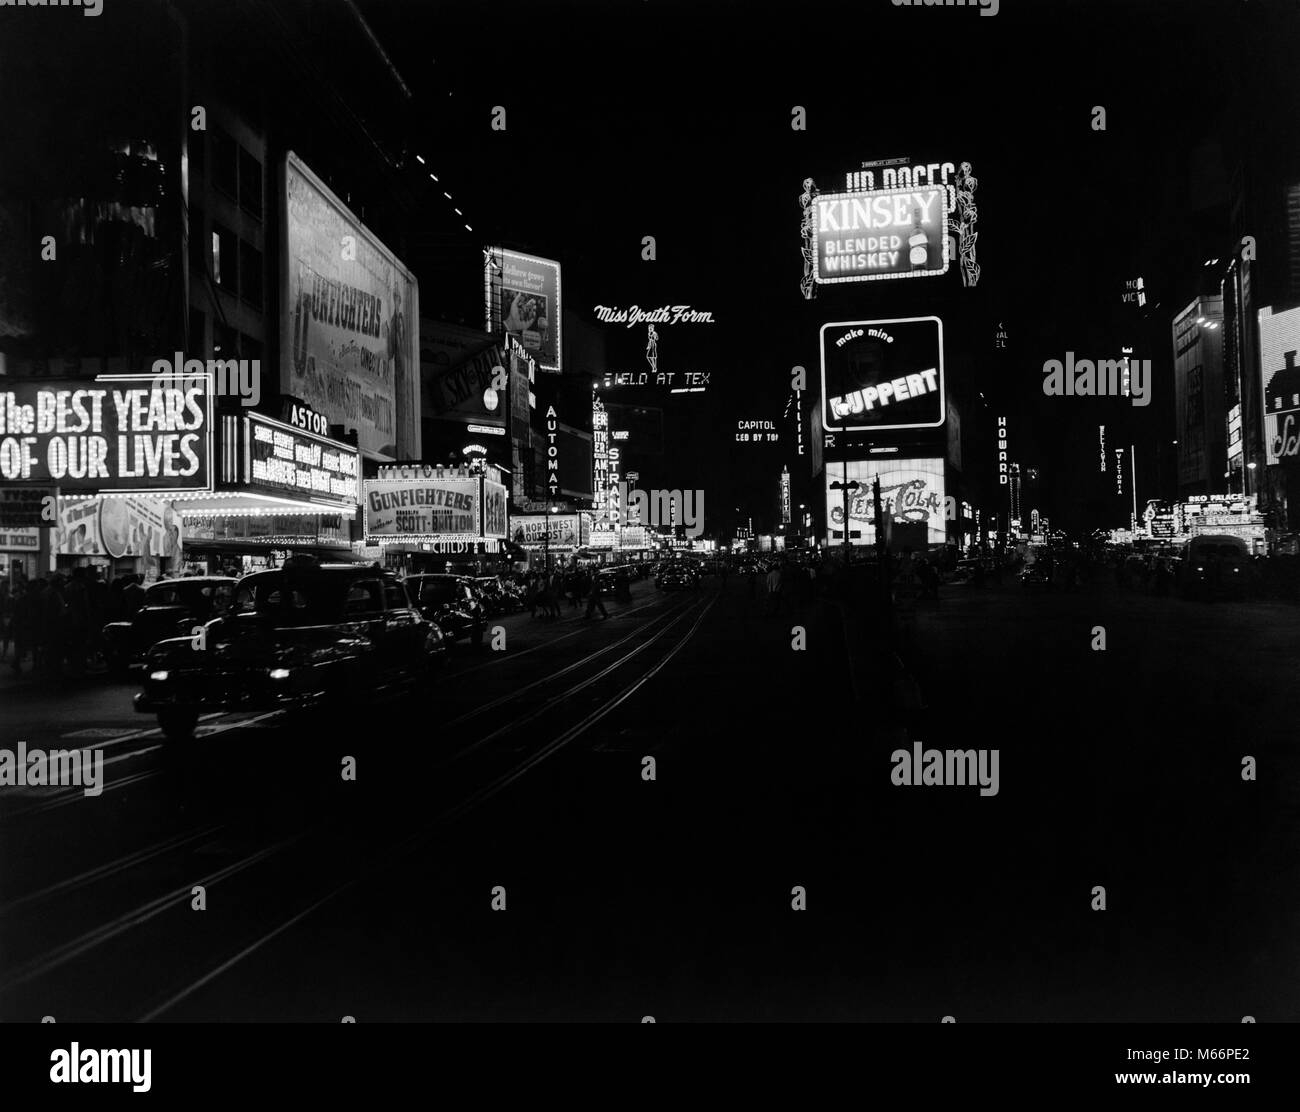 1940s TIMES SQUARE AT NIGHT BROADWAY 45TH STREET CIRCA 1947 NEON MARQUEES MOVIE THEATERS TAXIS MANHATTAN NYC USA - Stock Image